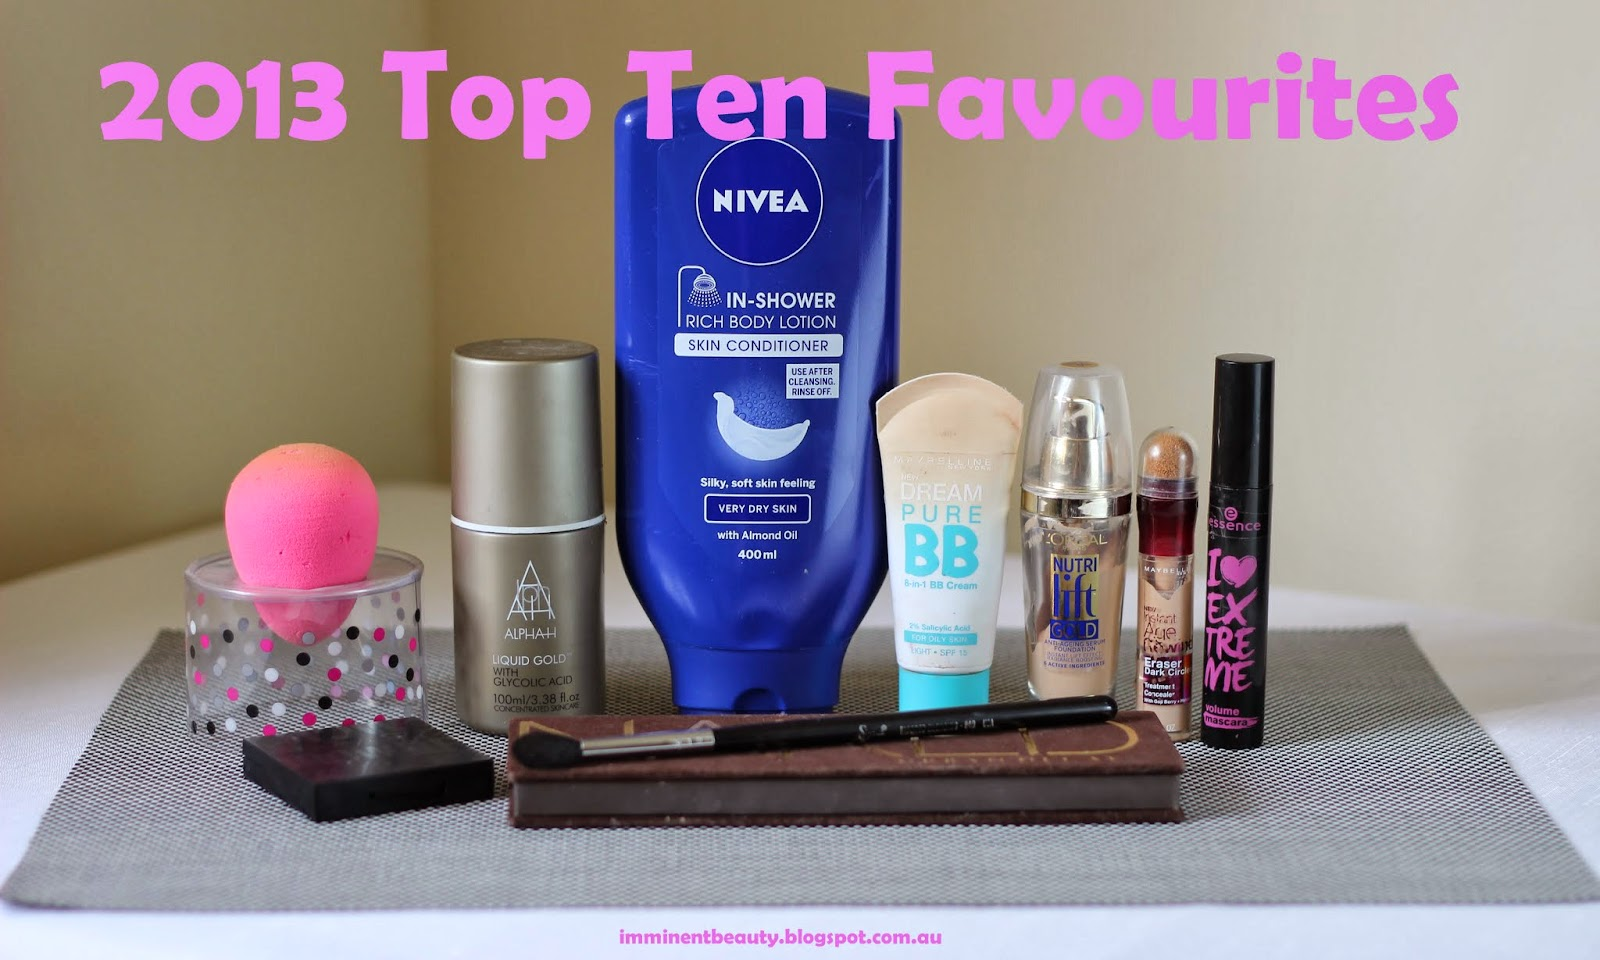 Top 10 Beauty Products, Beauty Blender, Urban Decay, Brow Zings, Benefit, Alpha H, skincare, makeup, mascara, bb cream, loreal, maybelline, sigma